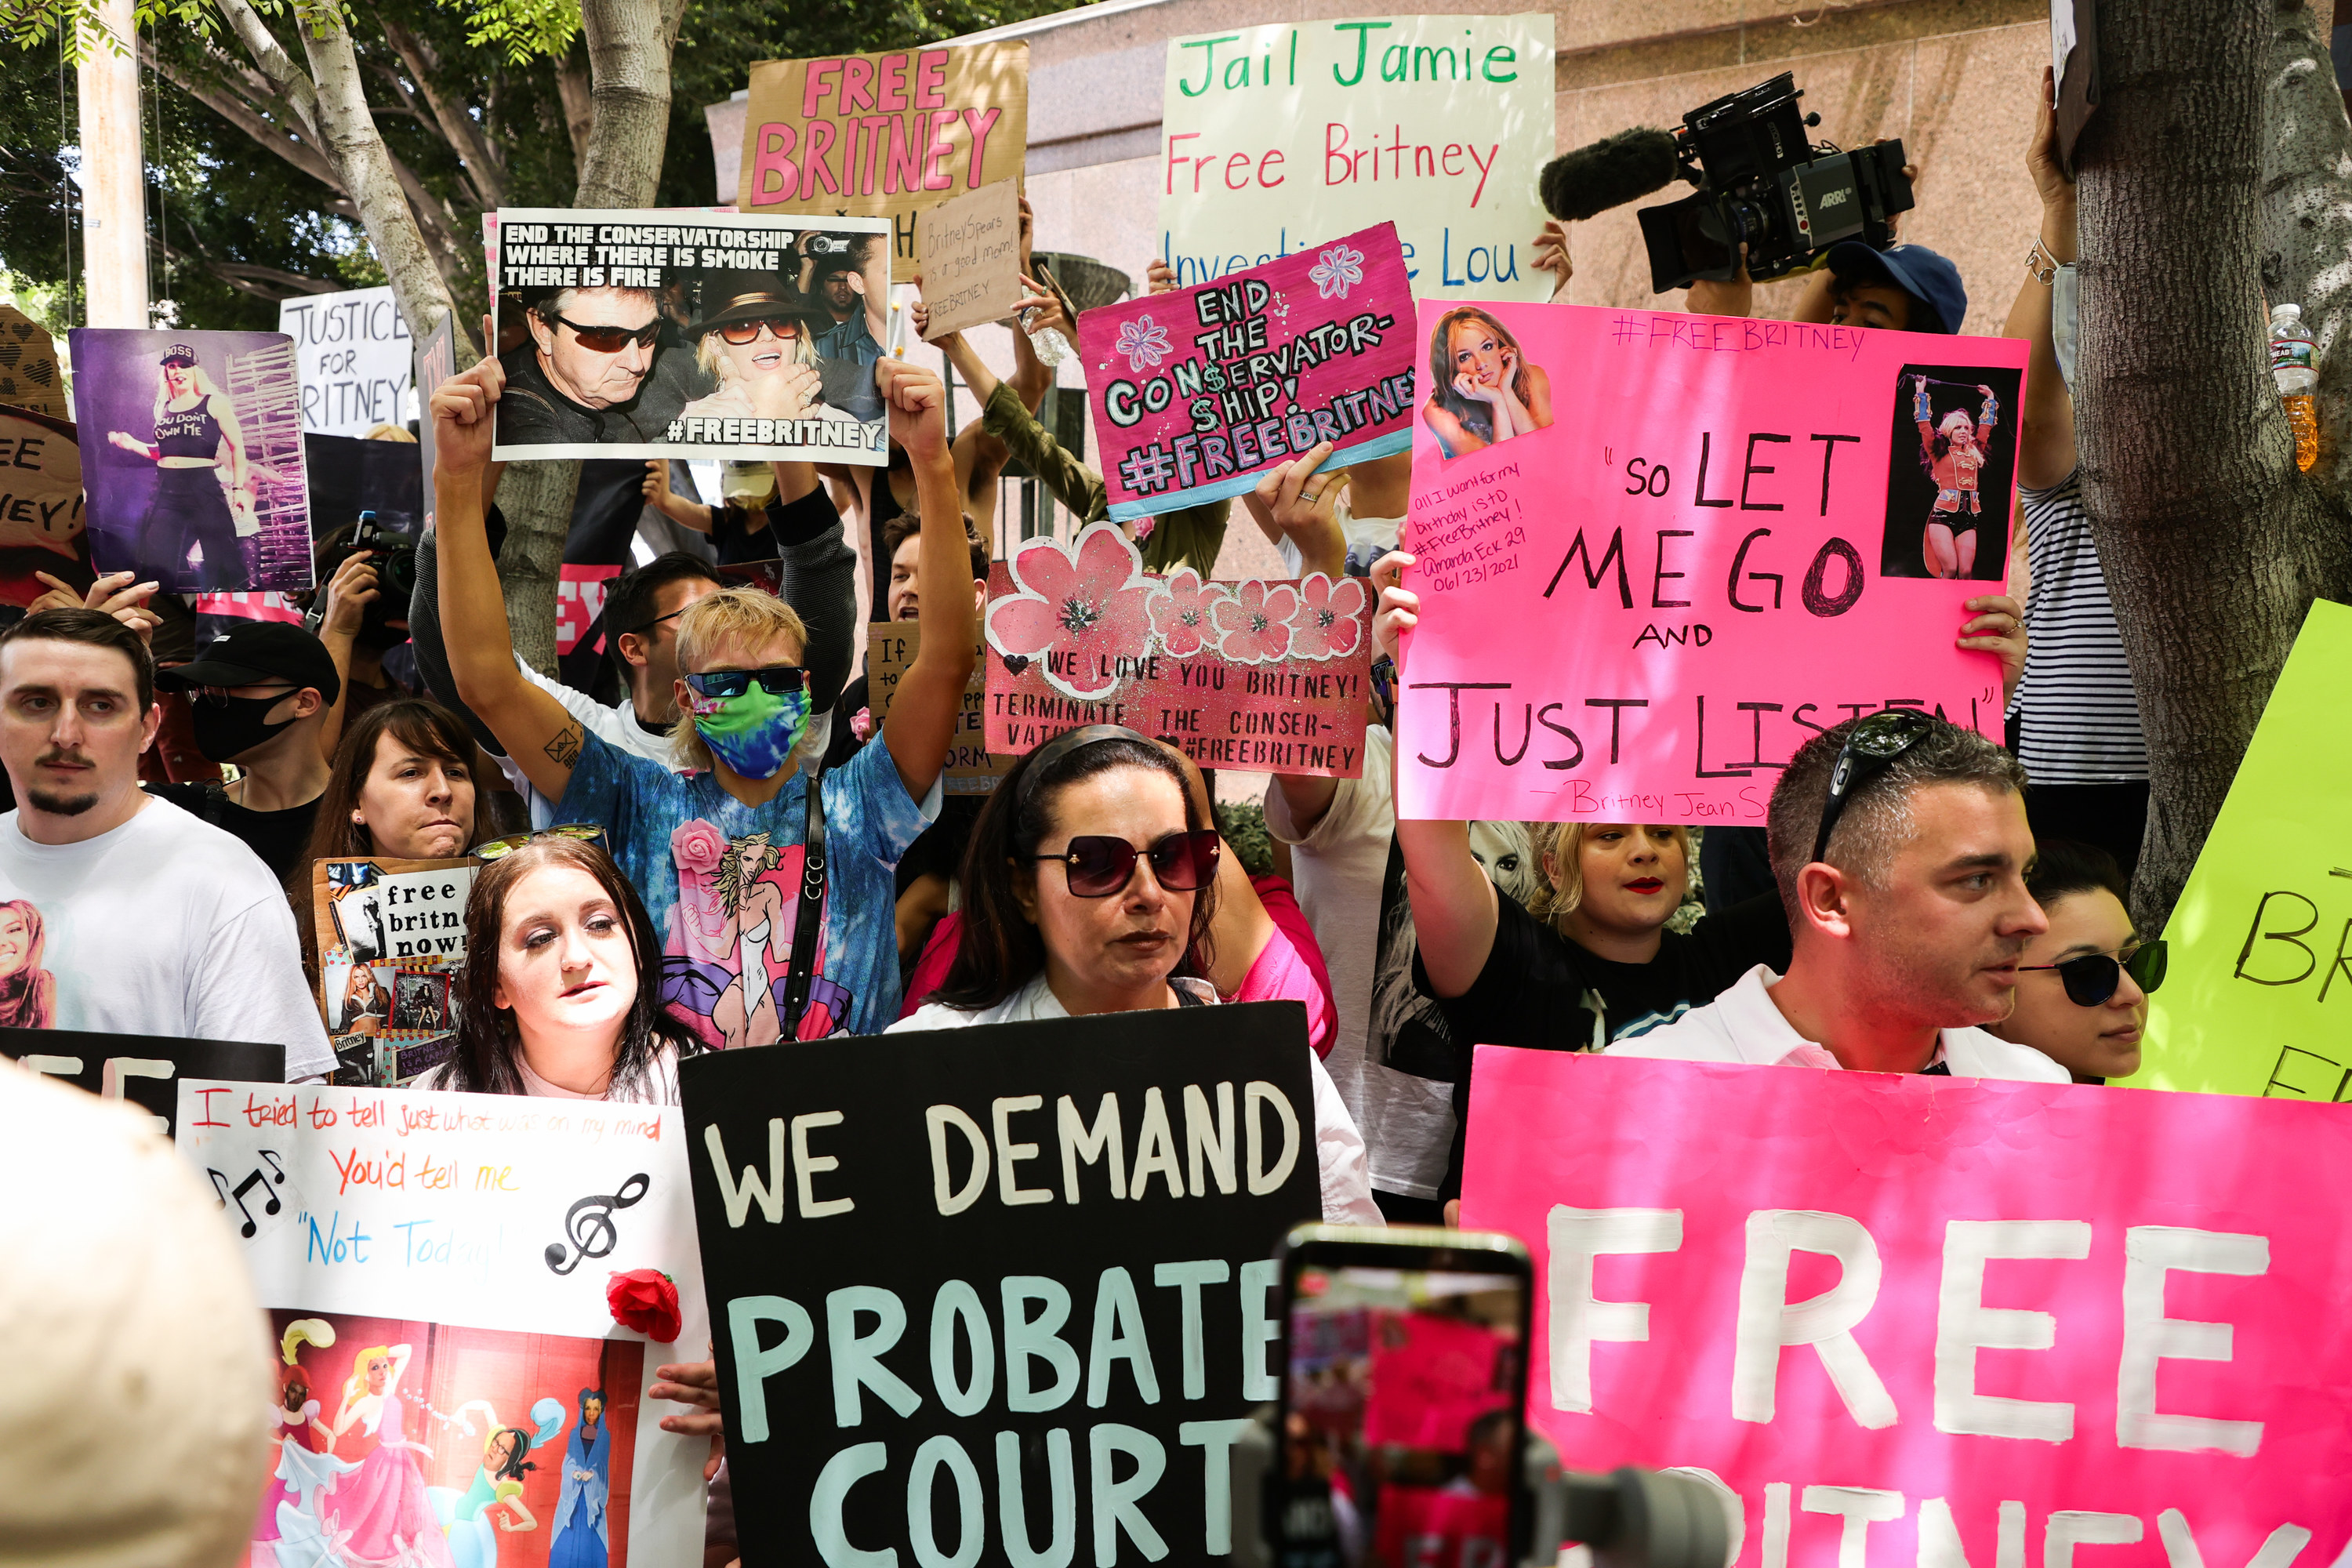 A group of fans protest for Britney's freedom